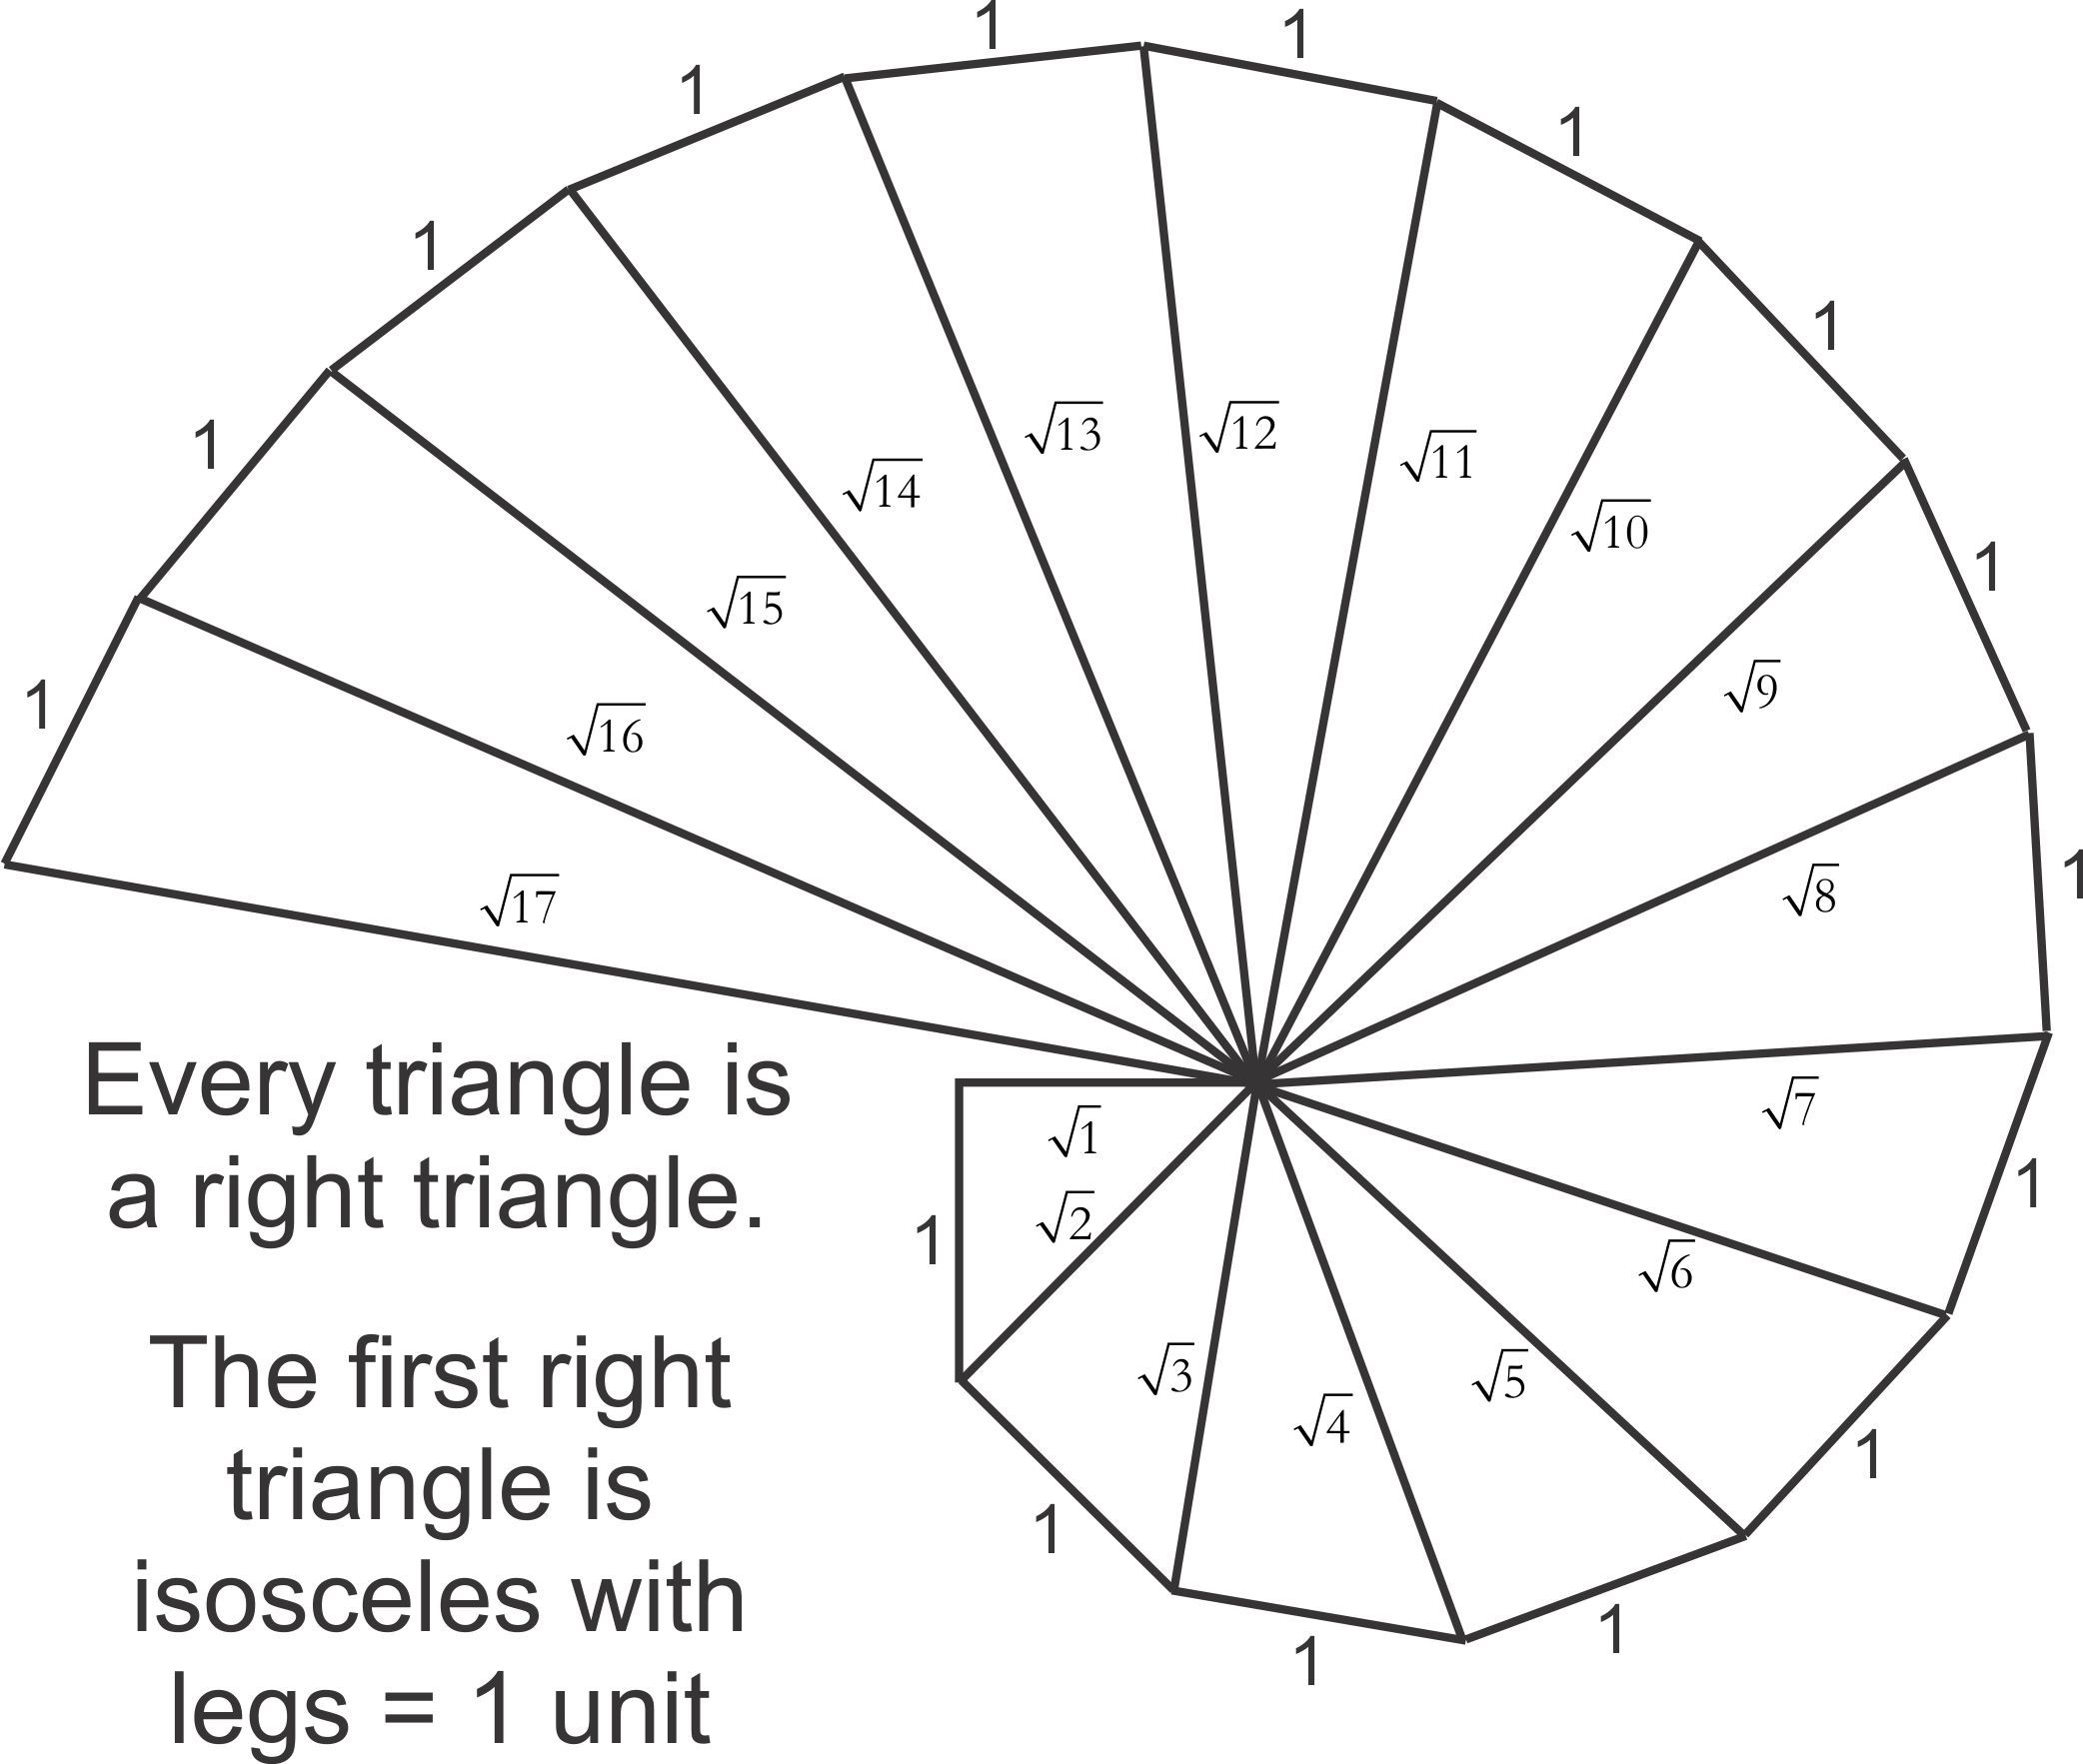 hight resolution of square root spiral square roots mathematics cosmic spiral ferris wheel fair